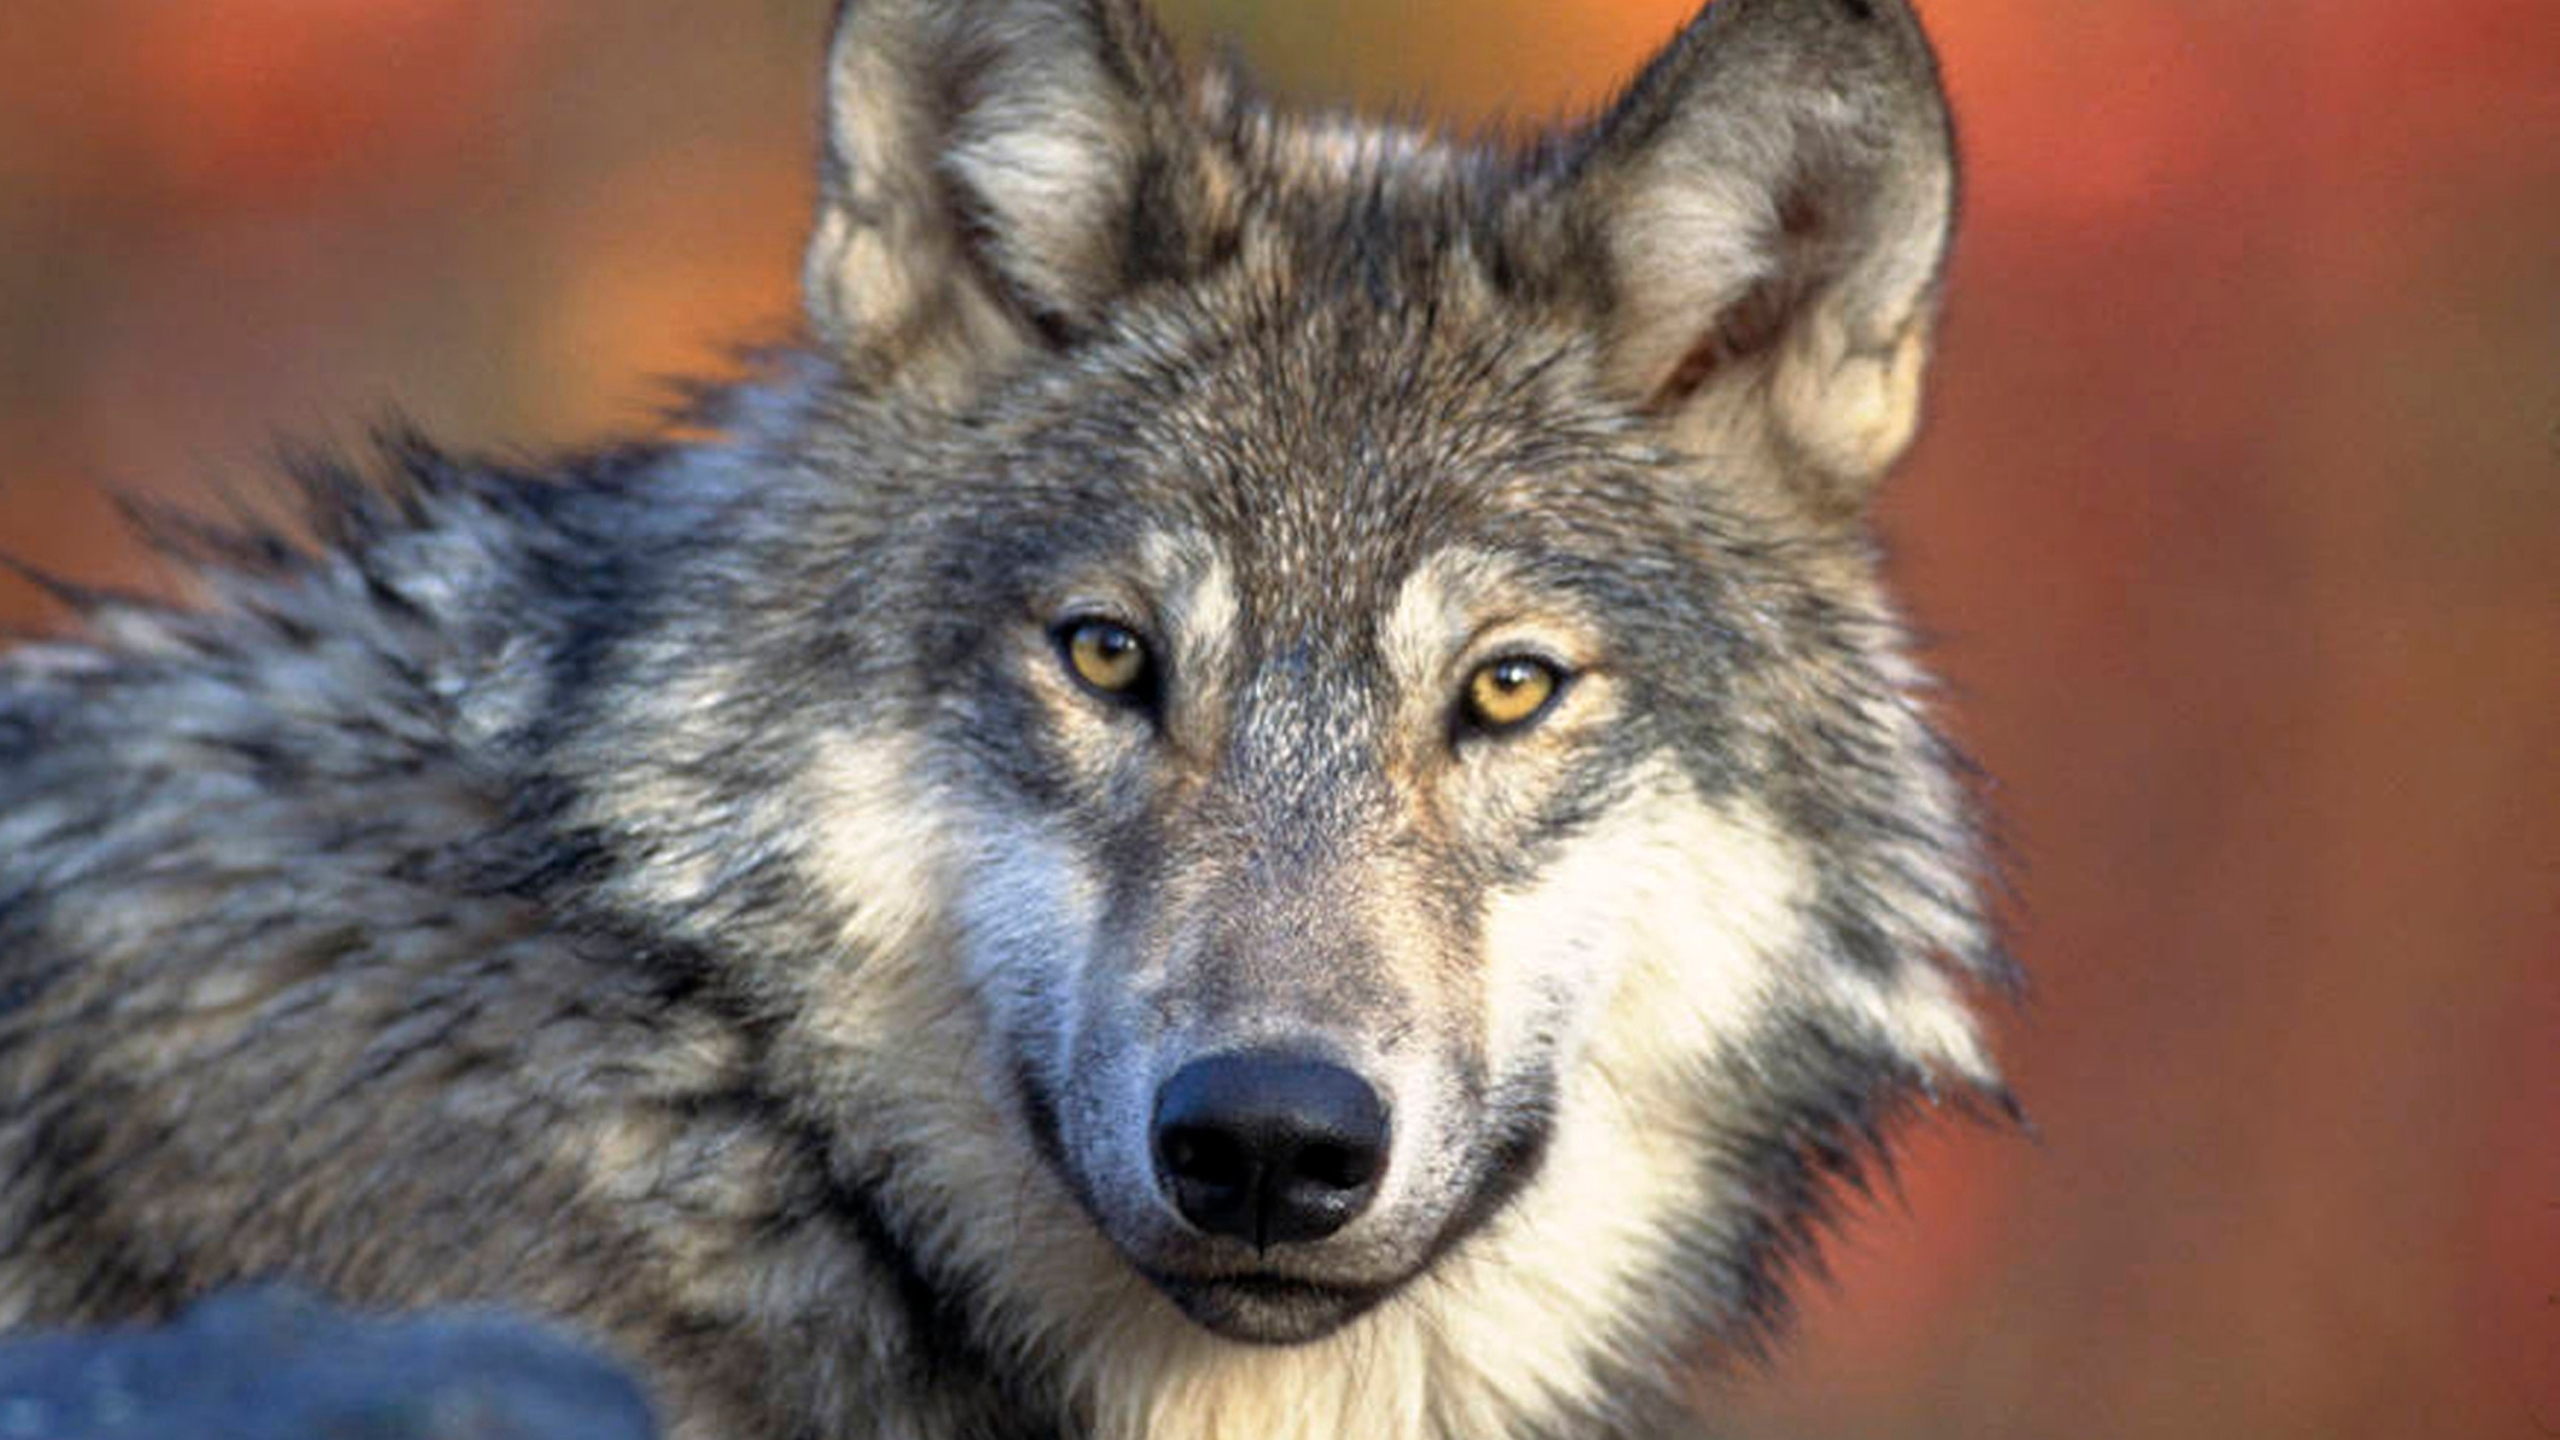 Wildlife officials propose 130-wolf limit for fall hunt